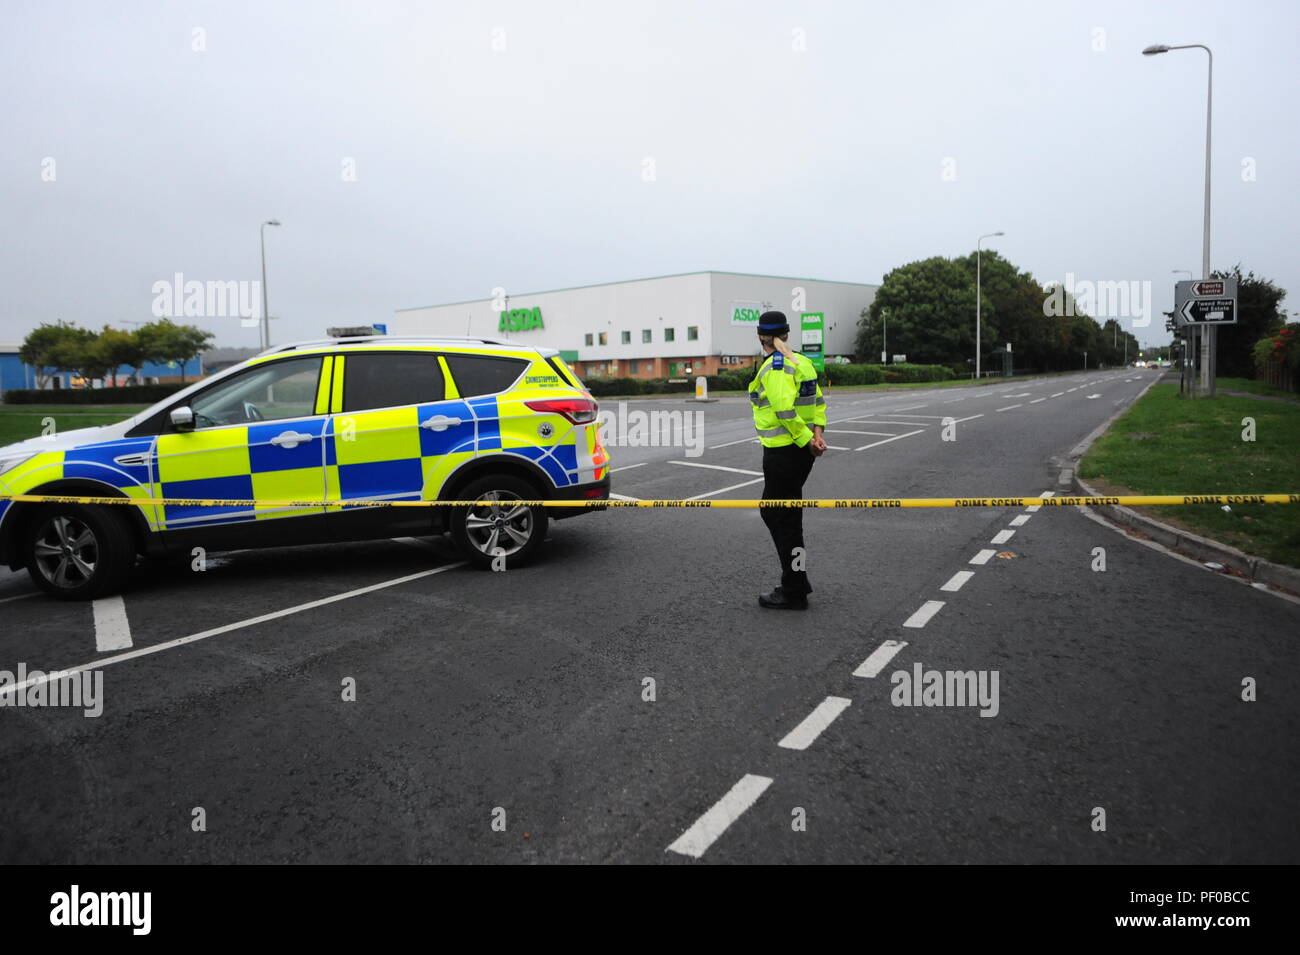 The supermarket ASDA  in Clevedon North Somerset was evacuated early Saturday evening and the Bomb Squad were called/ Robert Timoney/Alamy/Live/News Stock Photo